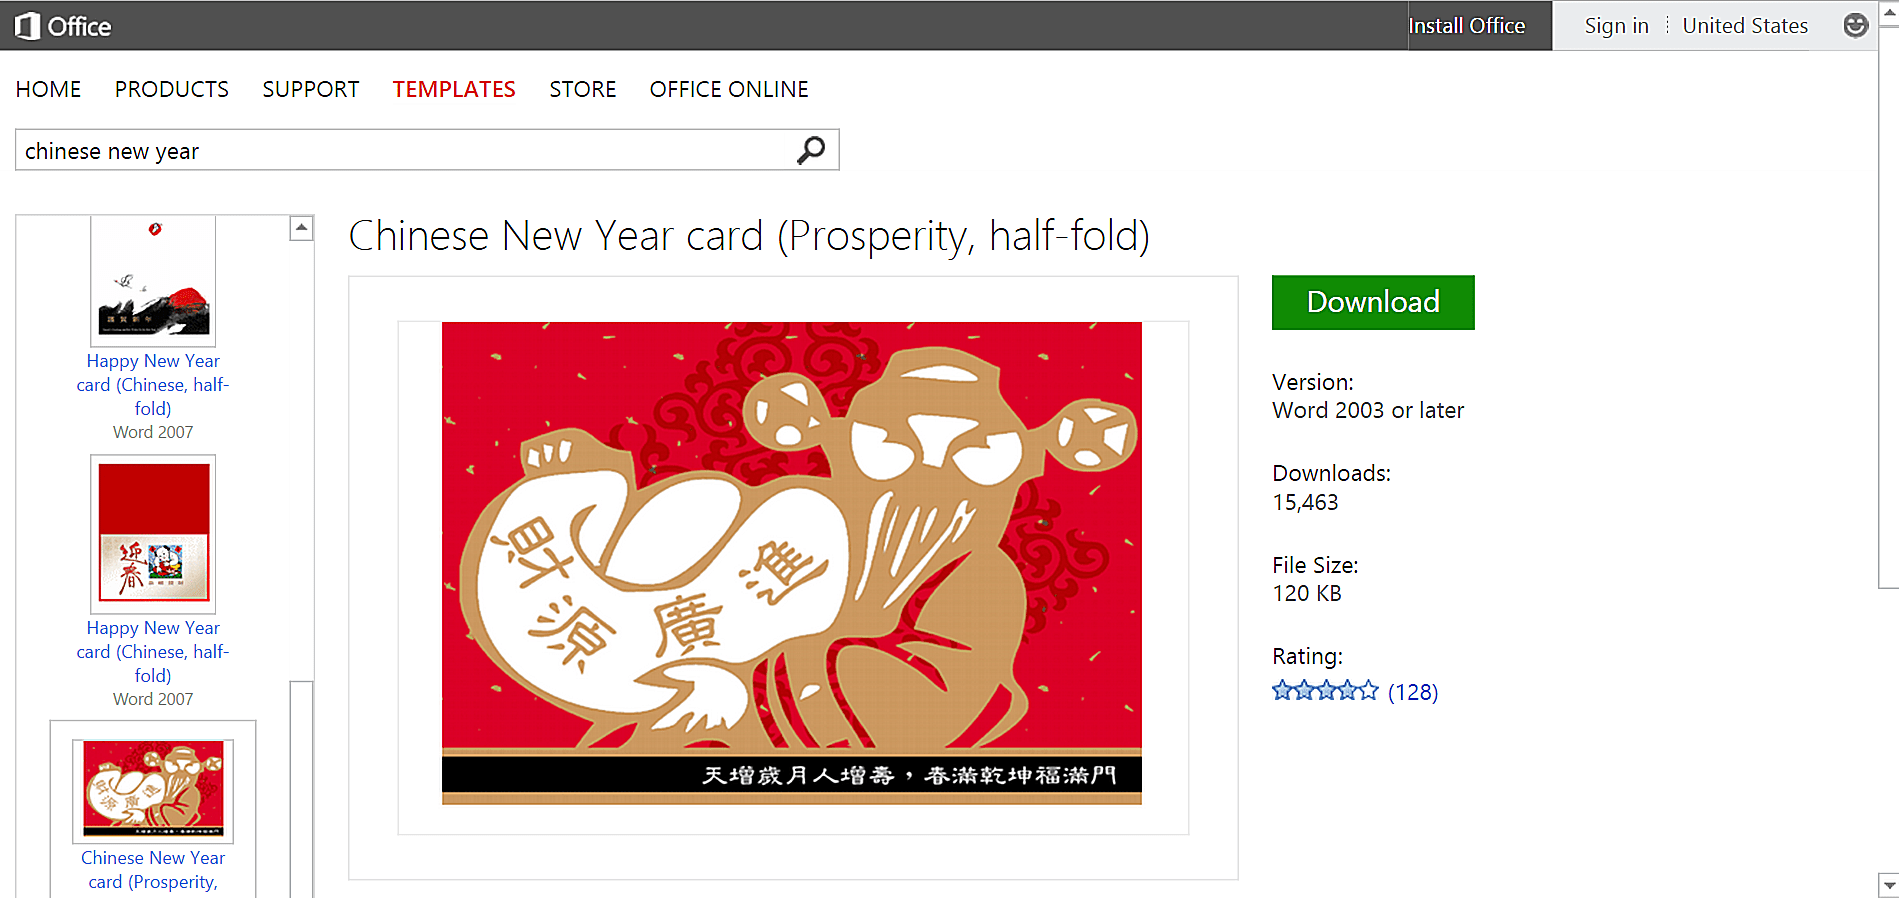 chinese new year greeting card template for microsoft word screenshot